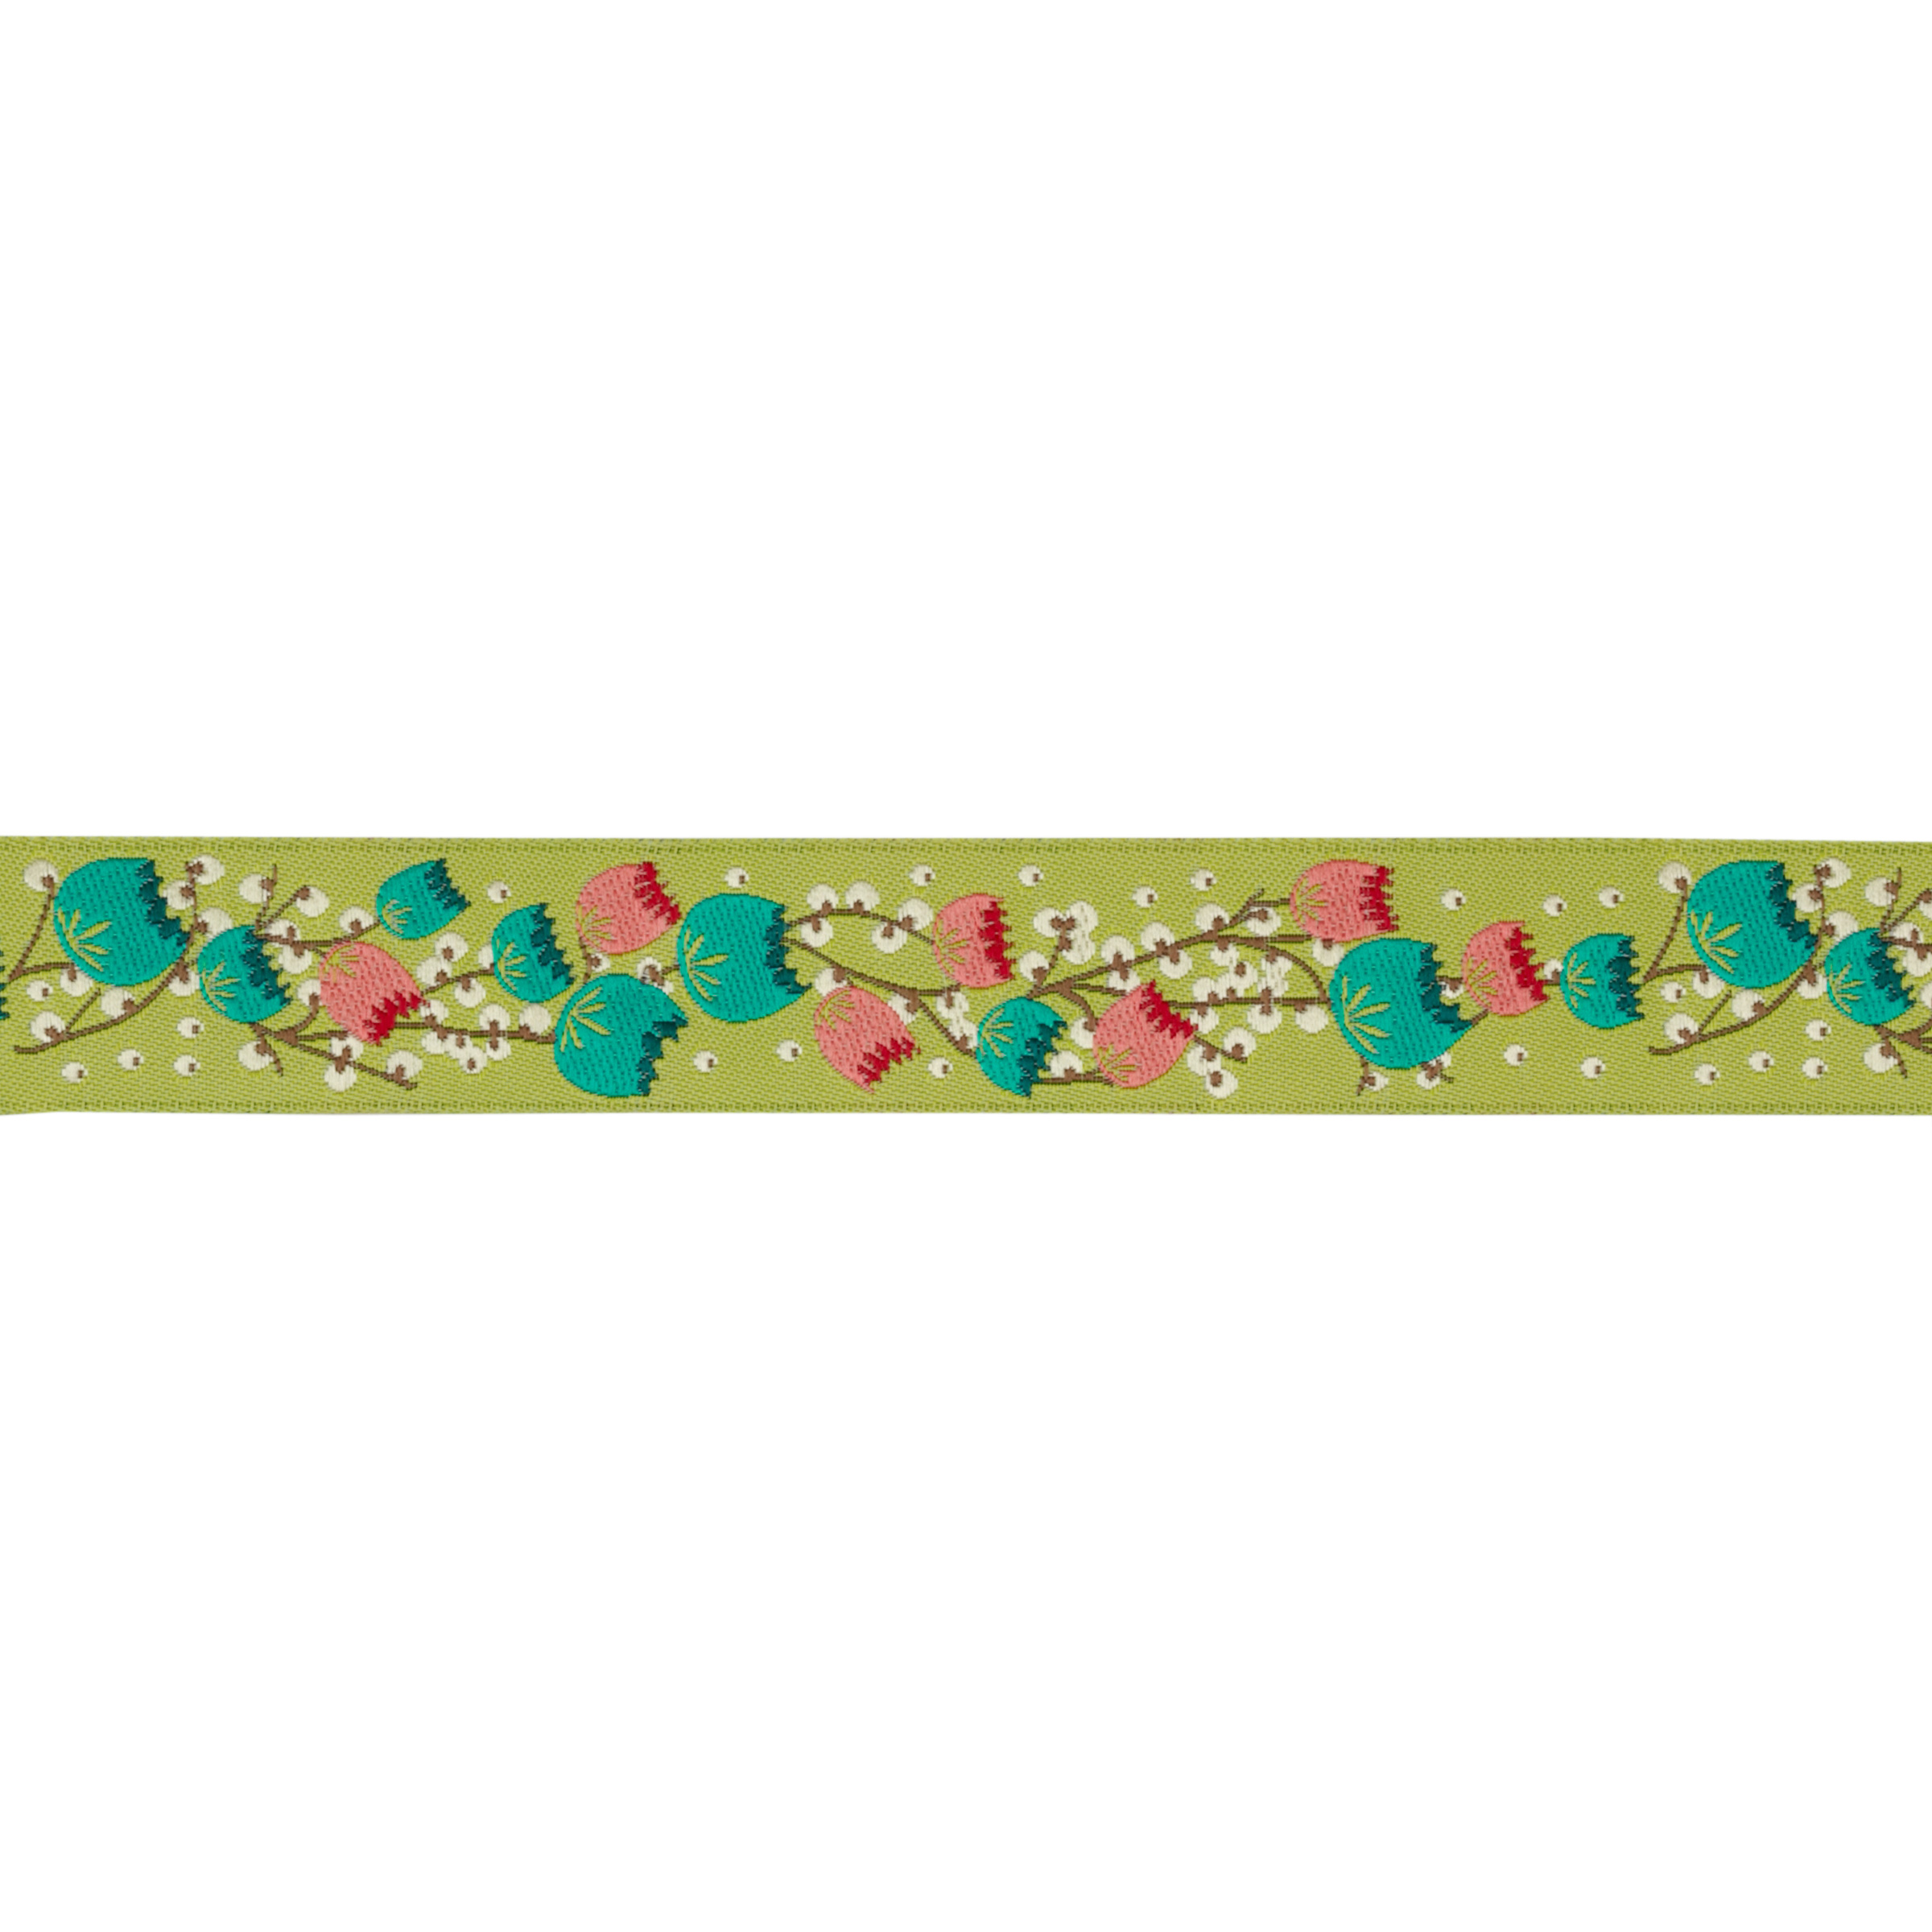 7/8'' Anna Maria Horner Ribbon Early Risers Turquoise/Green